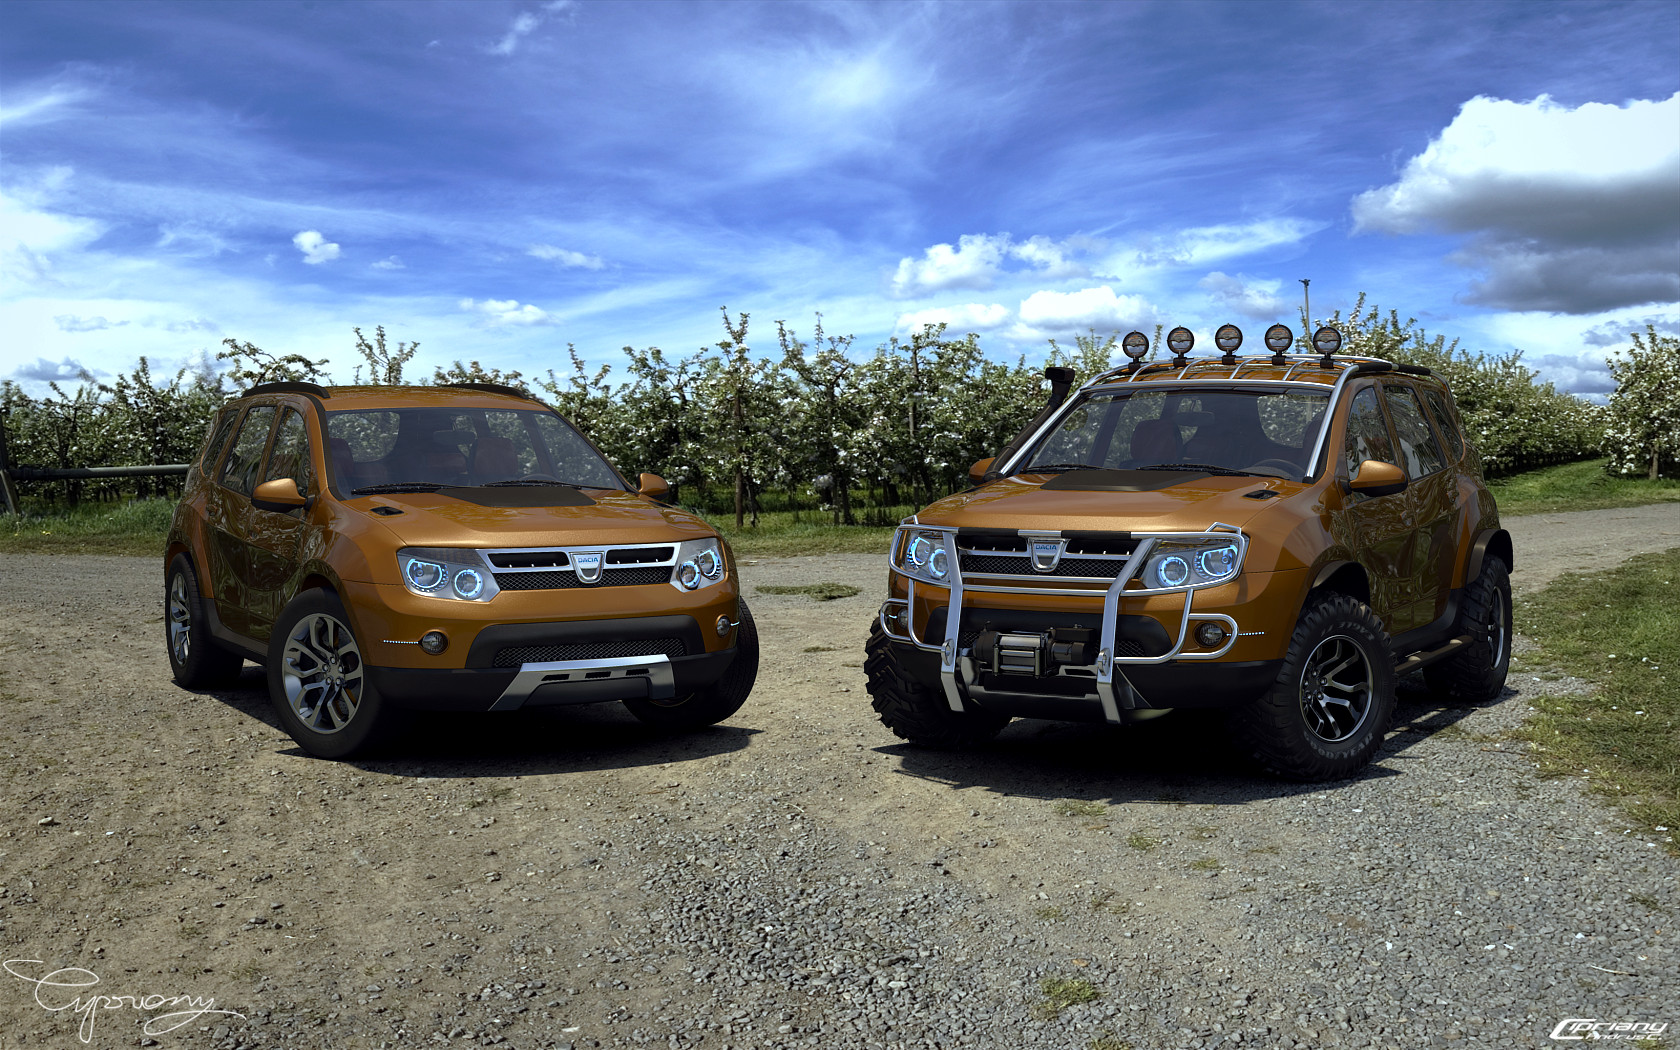 Dacia Duster Tuning 10 by cipriany